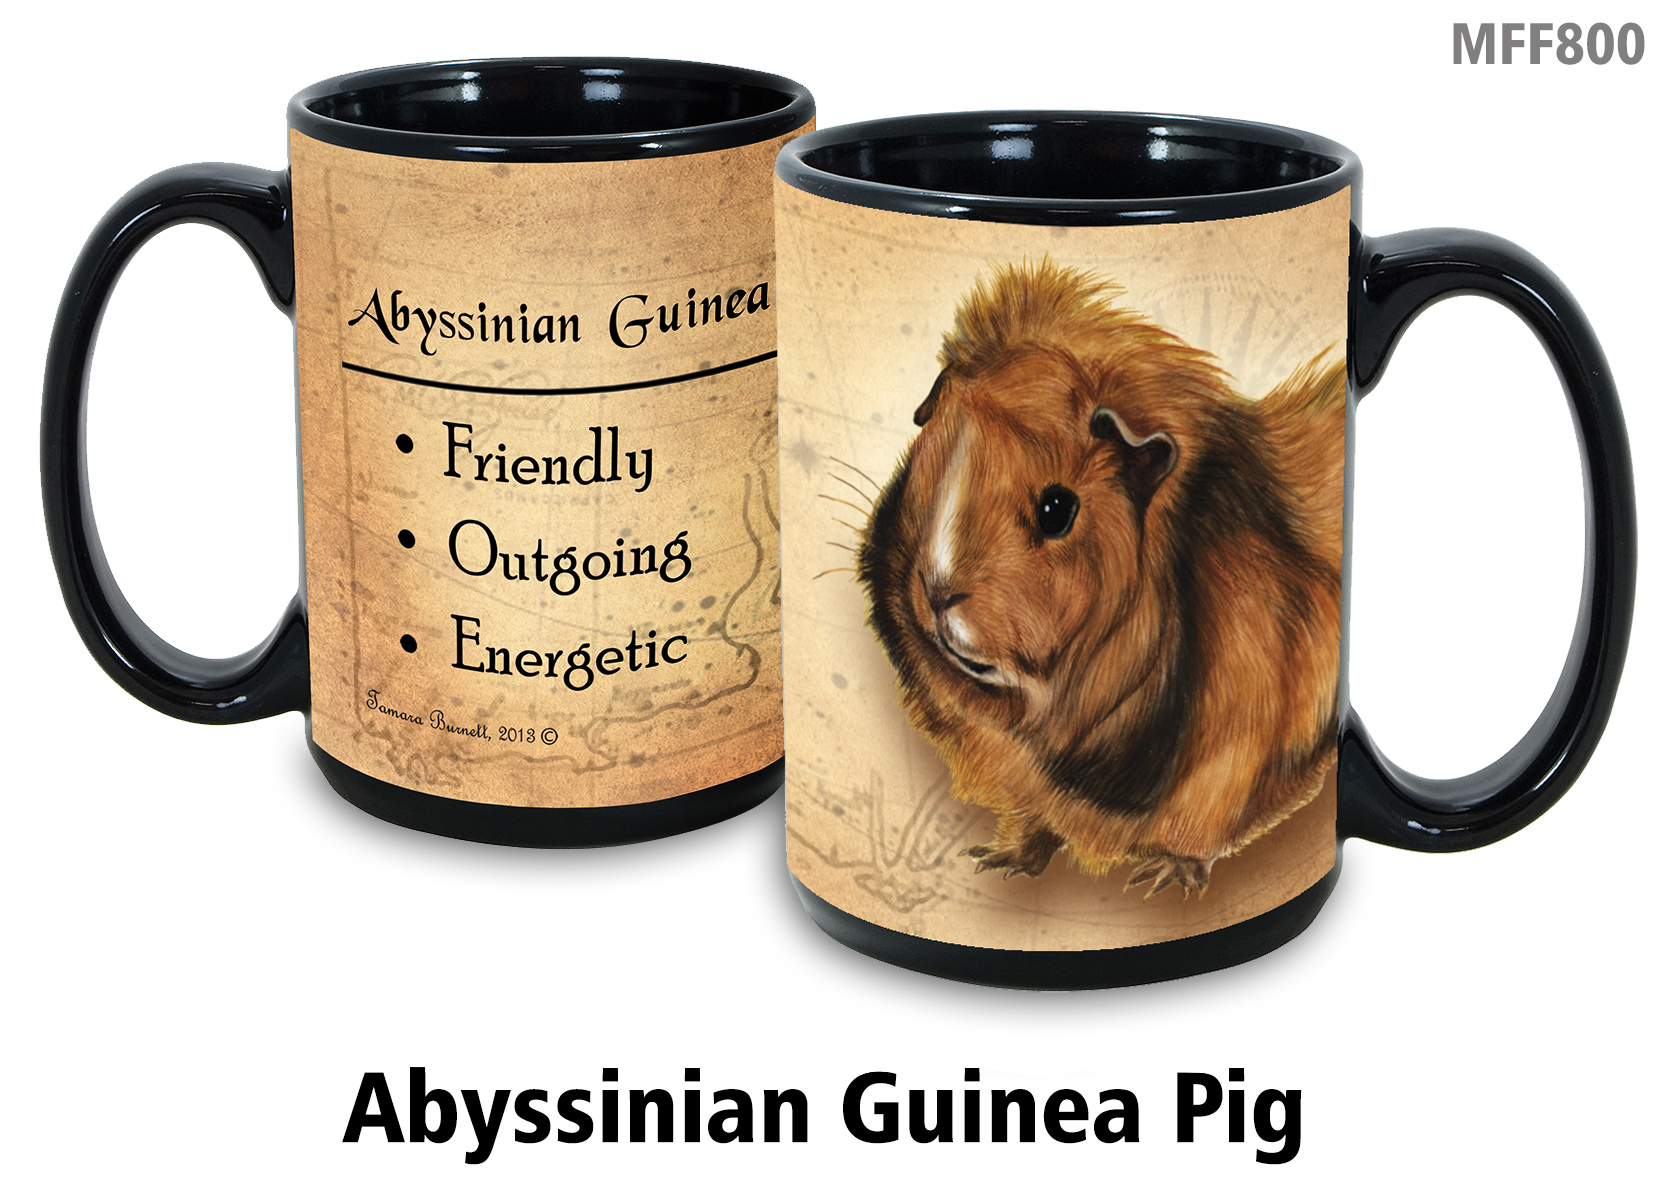 An image of product 8801 Guinea Pig (Abyssinian) - My Faithful Friends Mug 15 oz